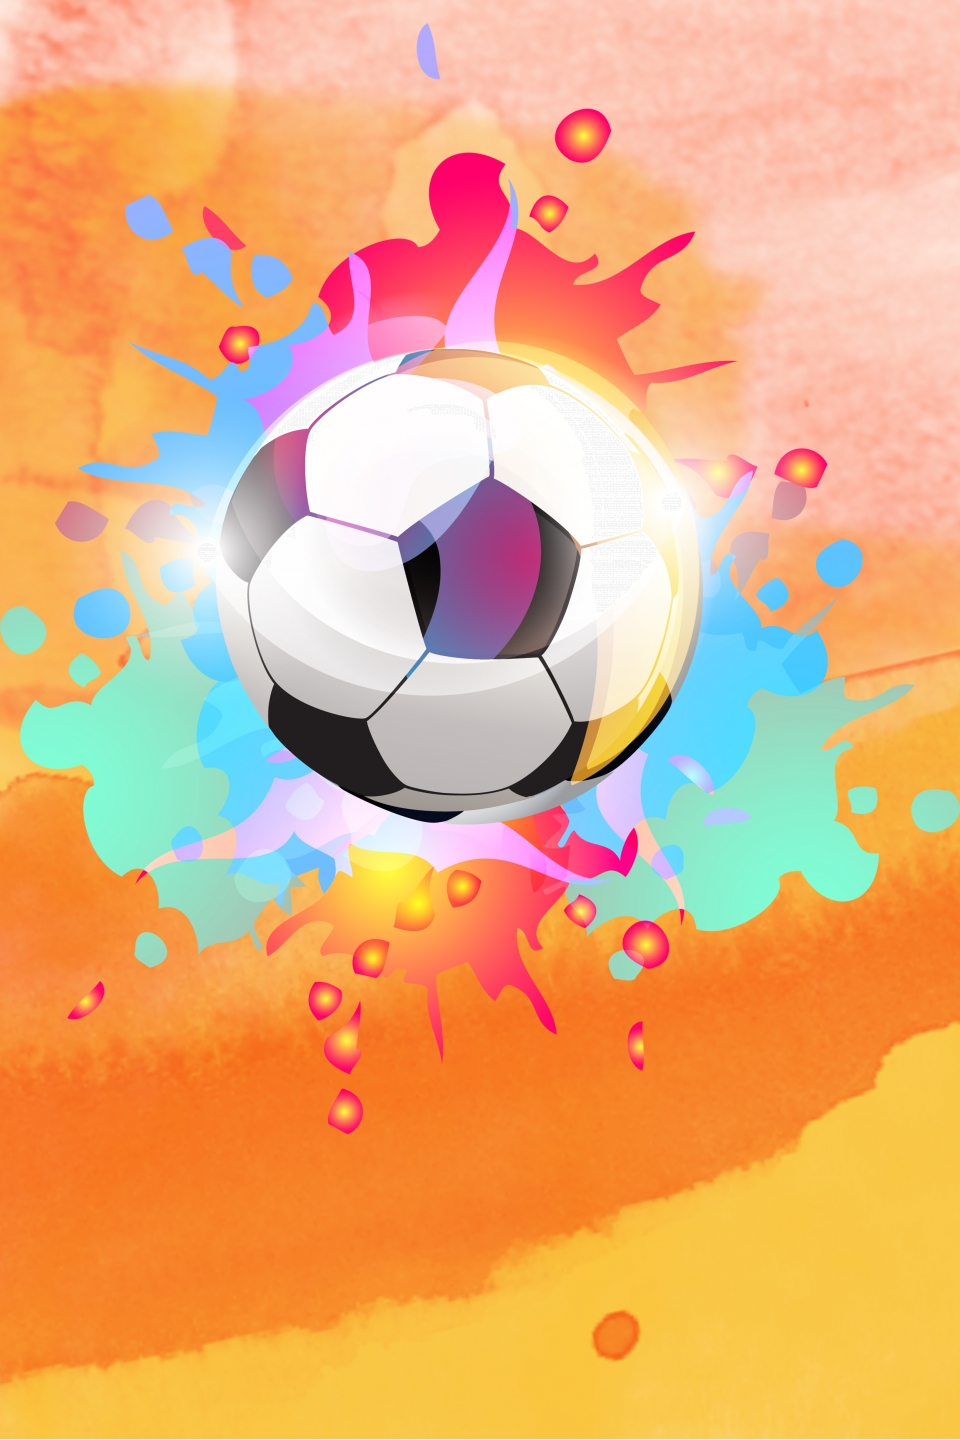 Football Hegemony Psd Poster Design Background Material Football Match Football Match Football League Background Image For Free Download